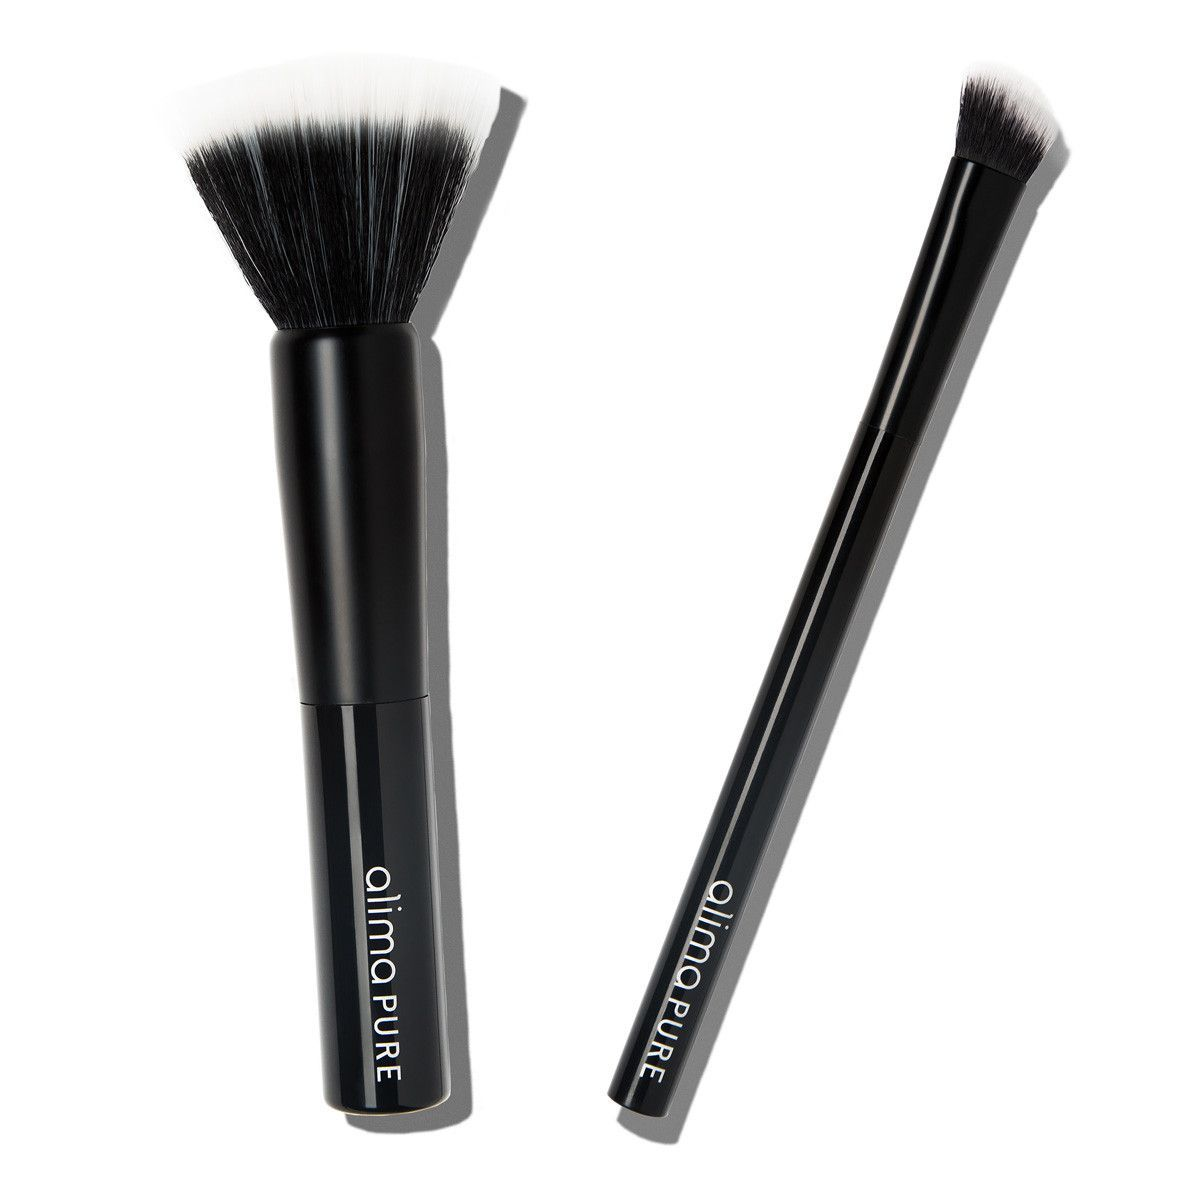 The Face First Brush Set